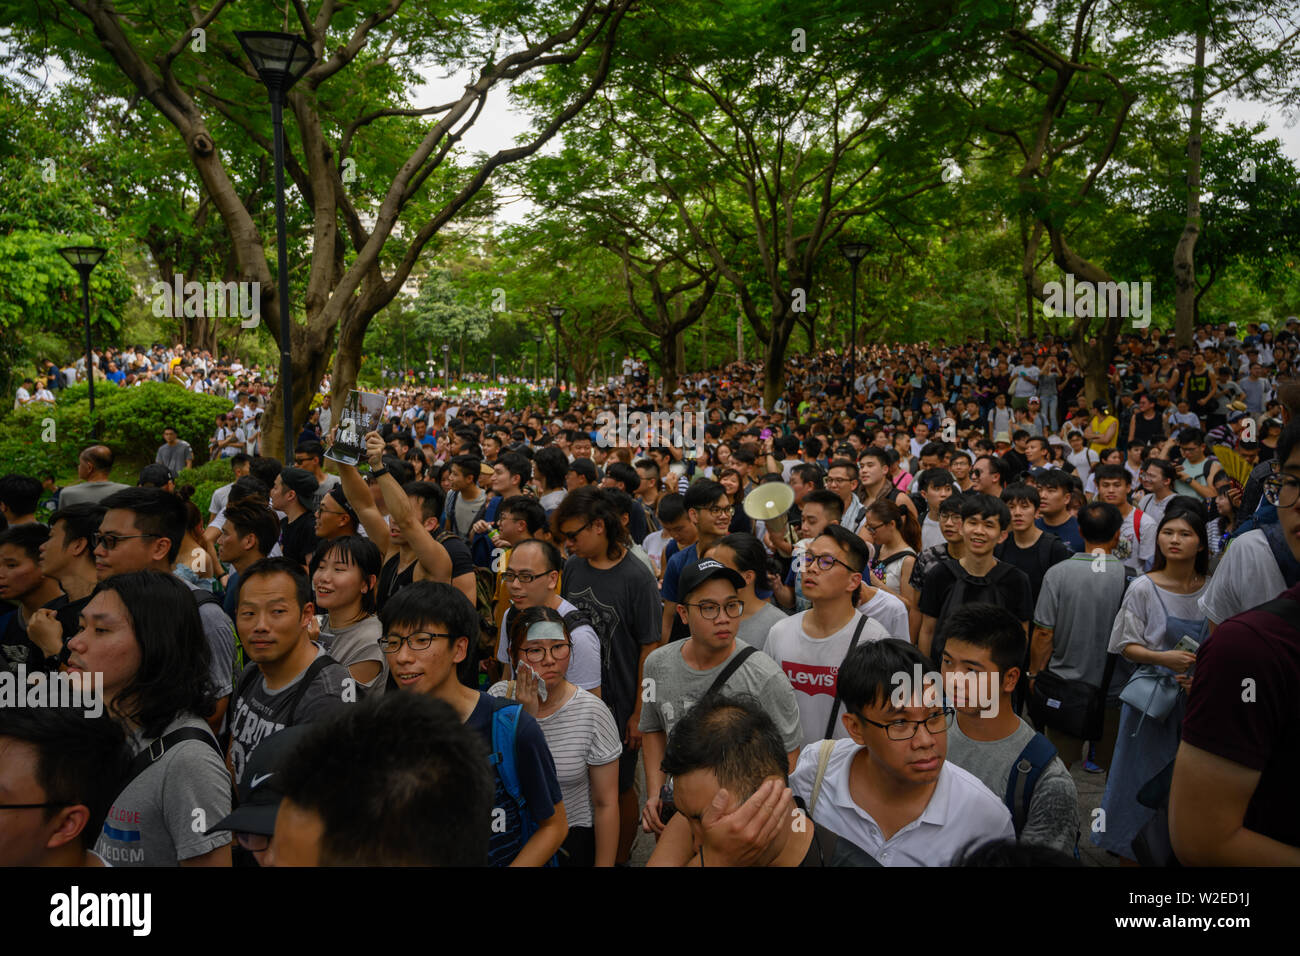 Tuen Mun, Hong Kong - July 6 2019: the crowd protest and occupy the Tuen Mun public park. The protesters took to the streets of Hong Kong to oppose a - Stock Image